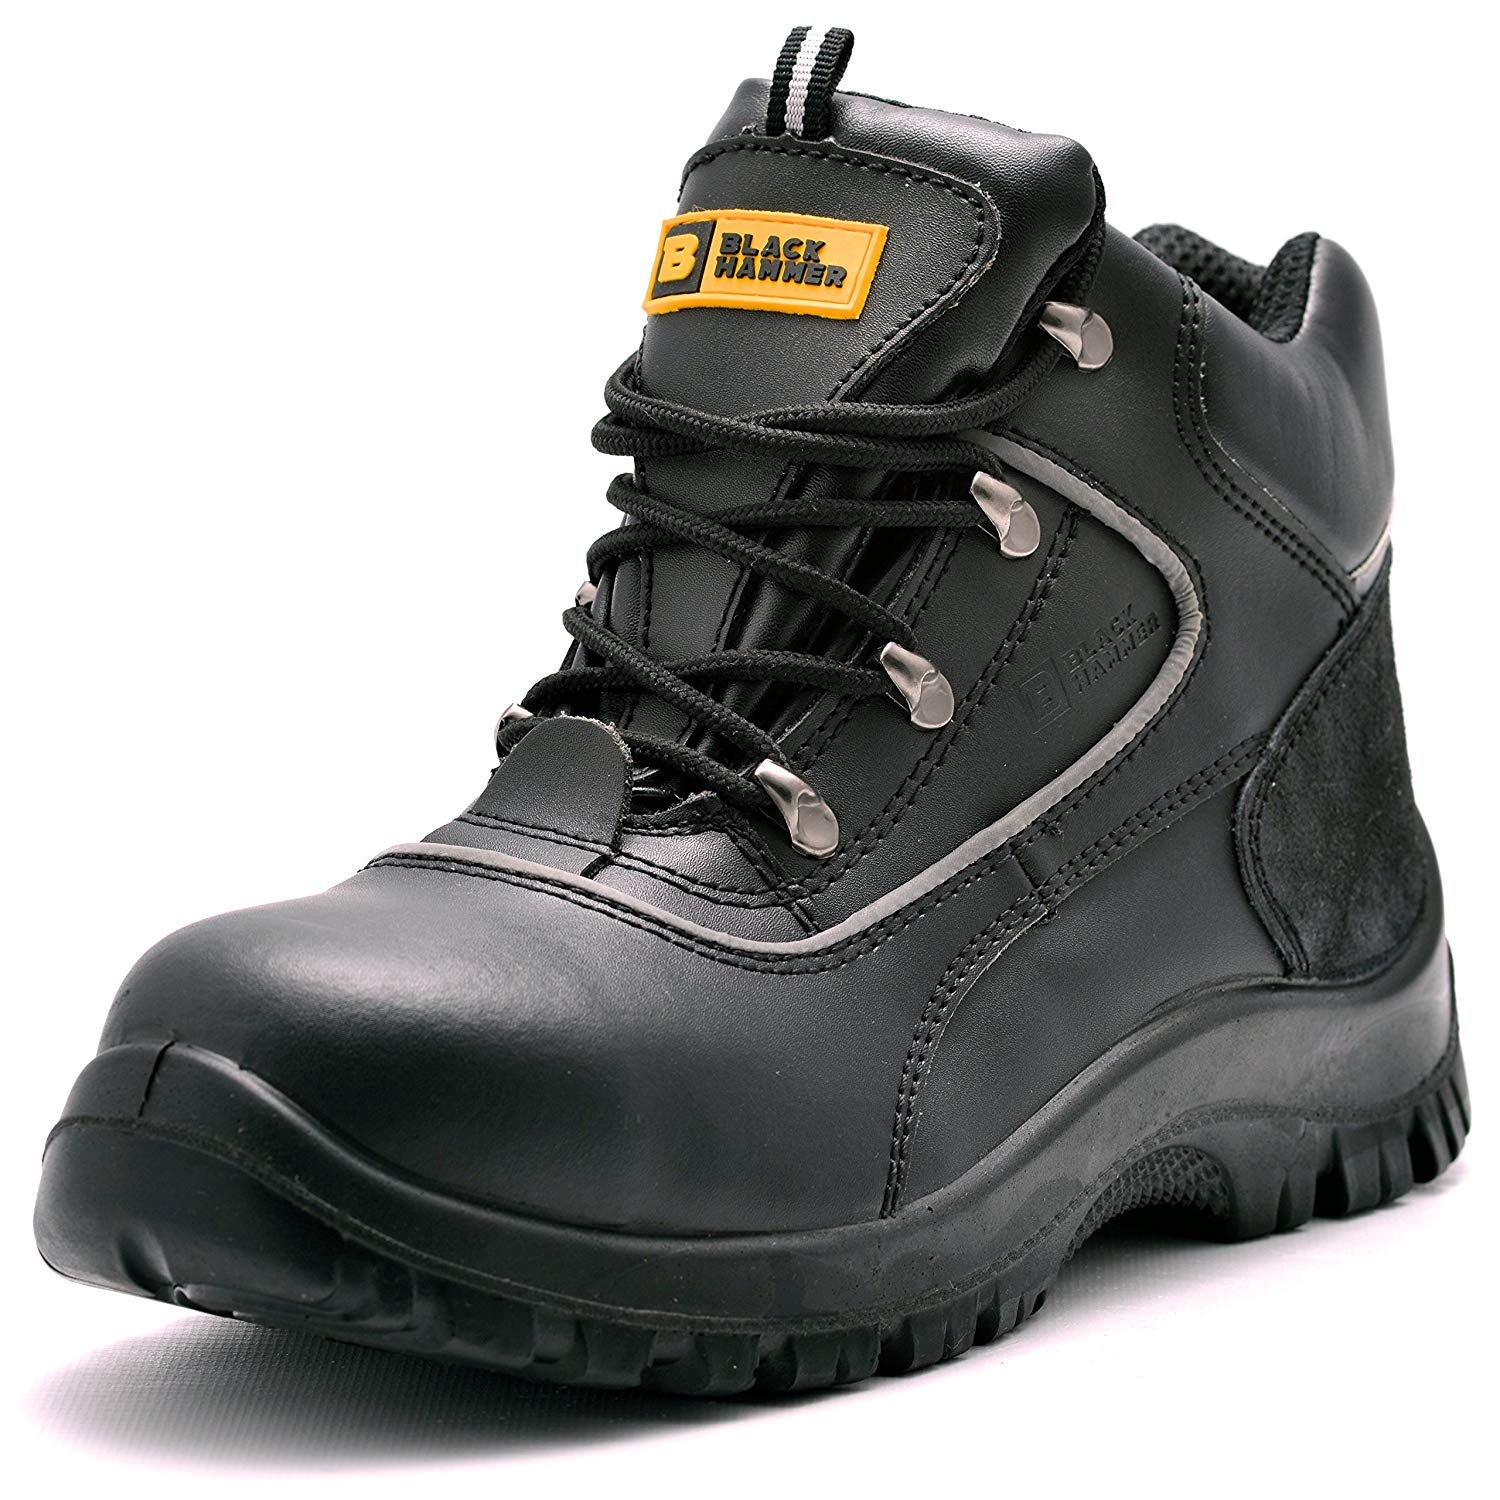 5e0dc6b152f Cheap Safety Boots S3, find Safety Boots S3 deals on line at Alibaba.com